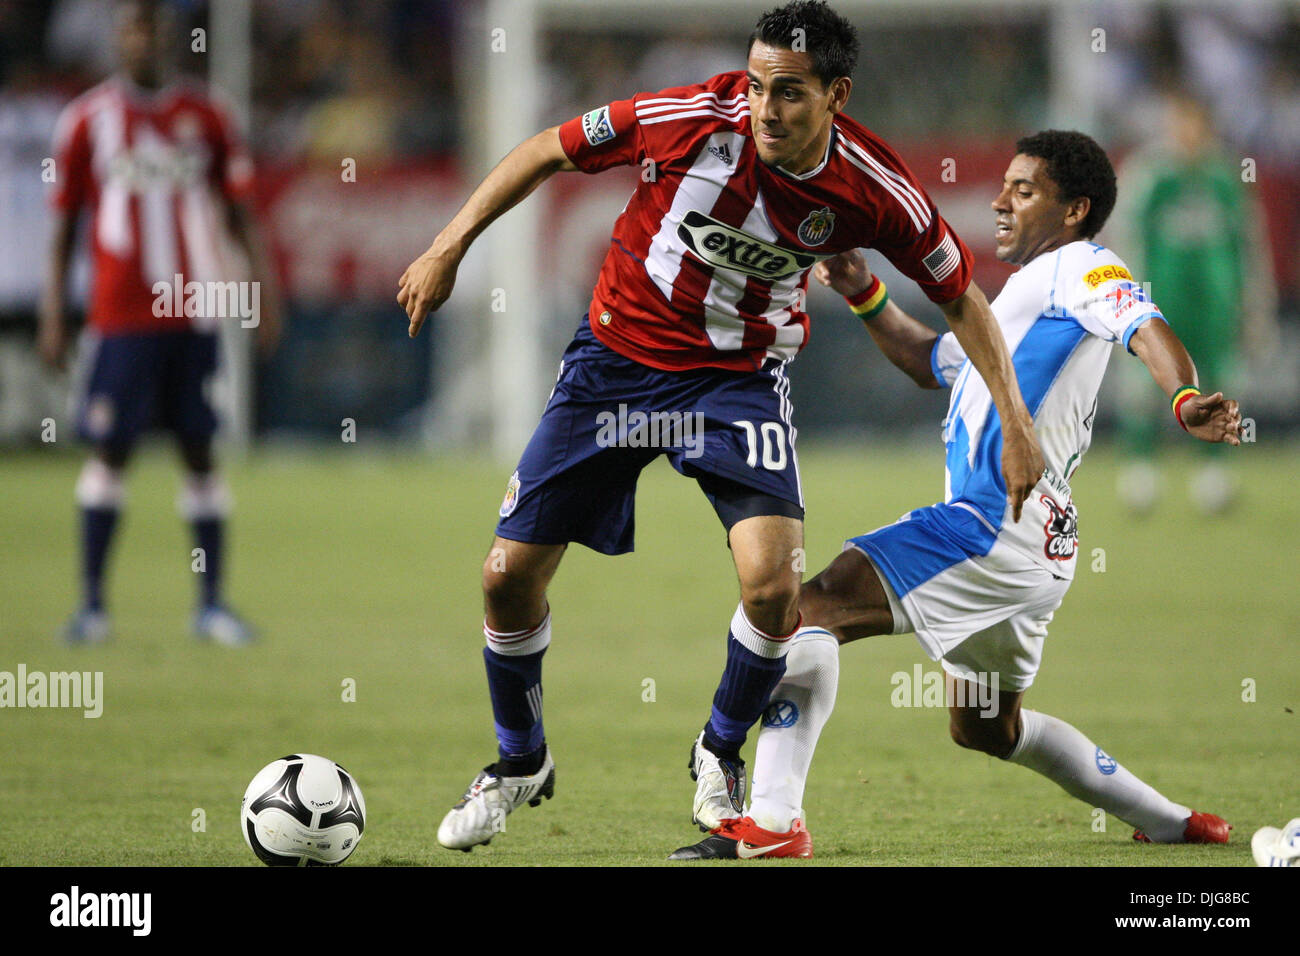 July 15, 2010 - Carson, California, United States of America - 15 July 2010: Chivas USA MF #10 Jesus Padilla (L) and Puebla FC MF #10 Andres Olivera (R) fight for the ball during the InterLiga match of Chivas USA vs Puebla FC at the Home Depot Center in Carson, California. Puebla FC went on to defeat Chivas USA with a final score of 2-1. Mandatory Credit: Brandon Parry / Southcreek - Stock Image